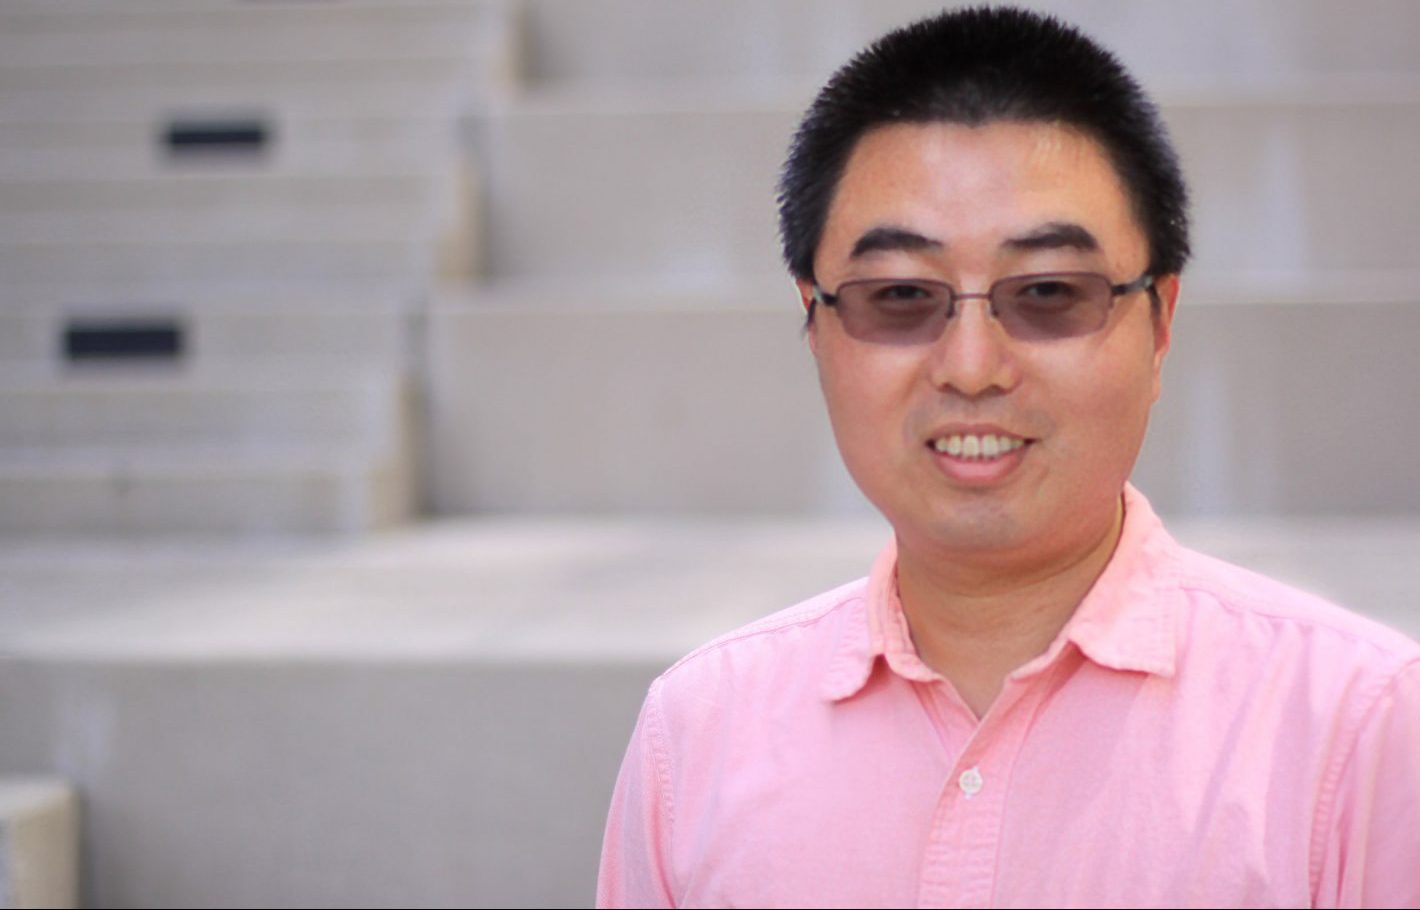 Prof. Wang Receives NSF CAREER Award To Help Earth Scientists Using AI And Data Science